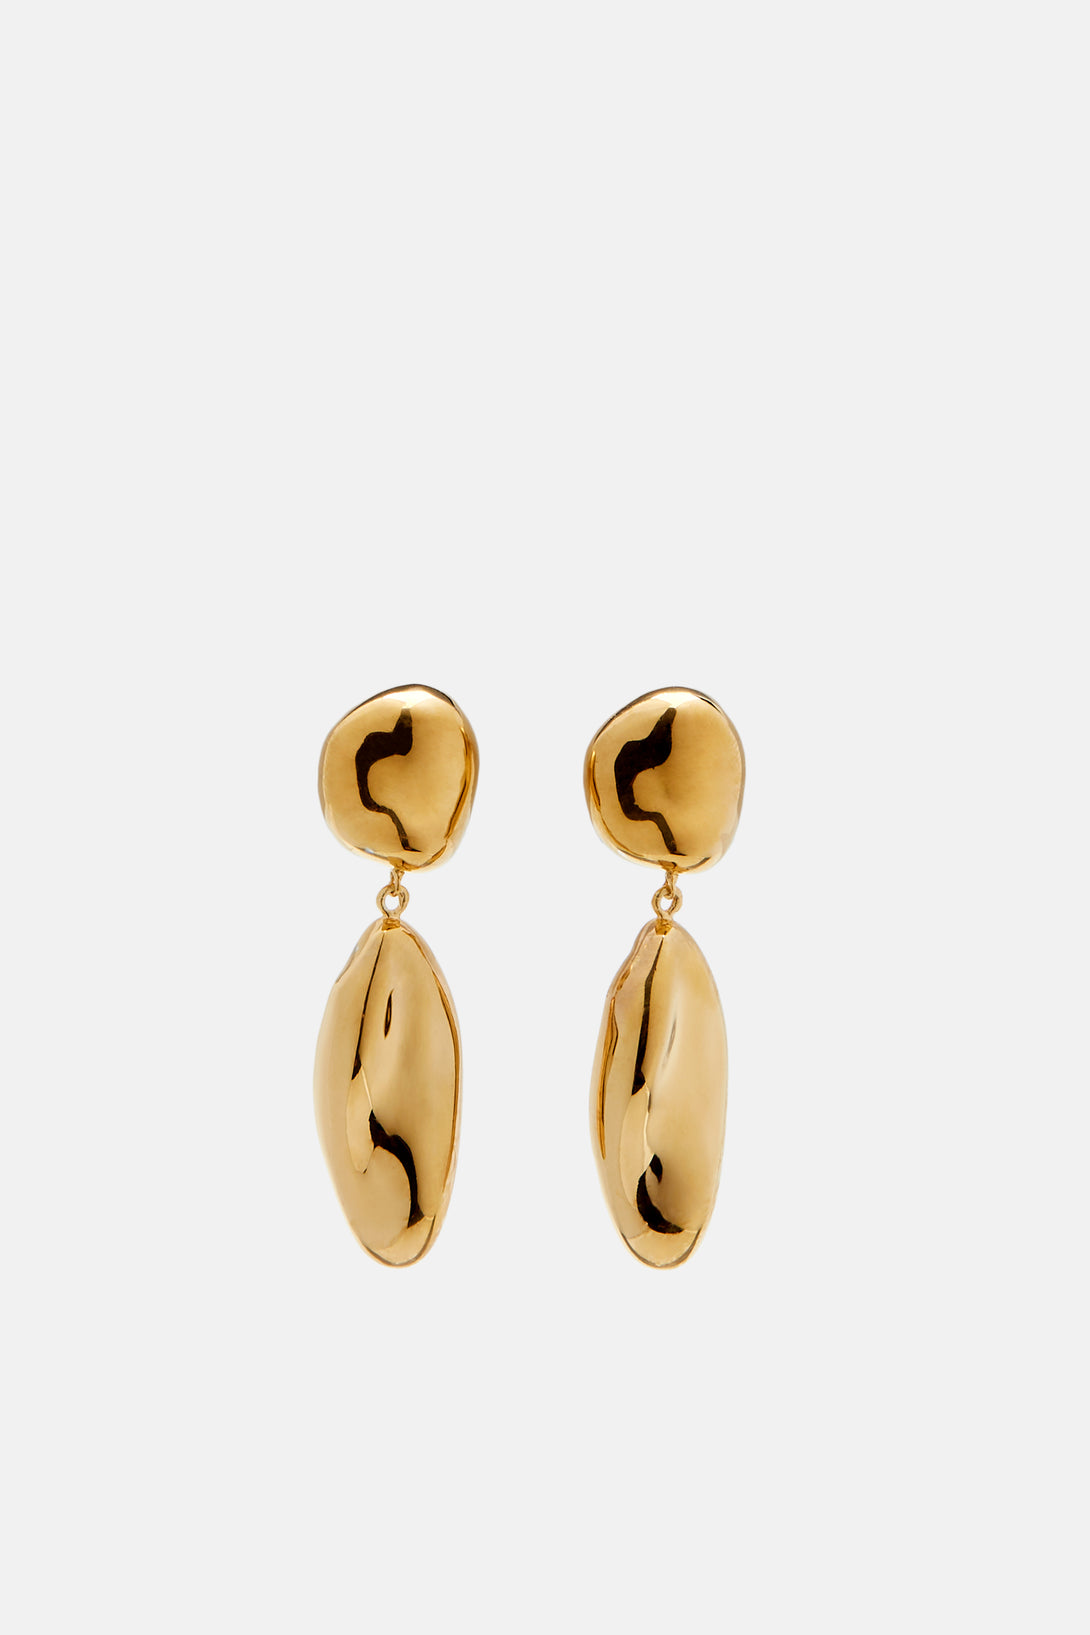 Short Patrice Earrings - Gold Vermeil